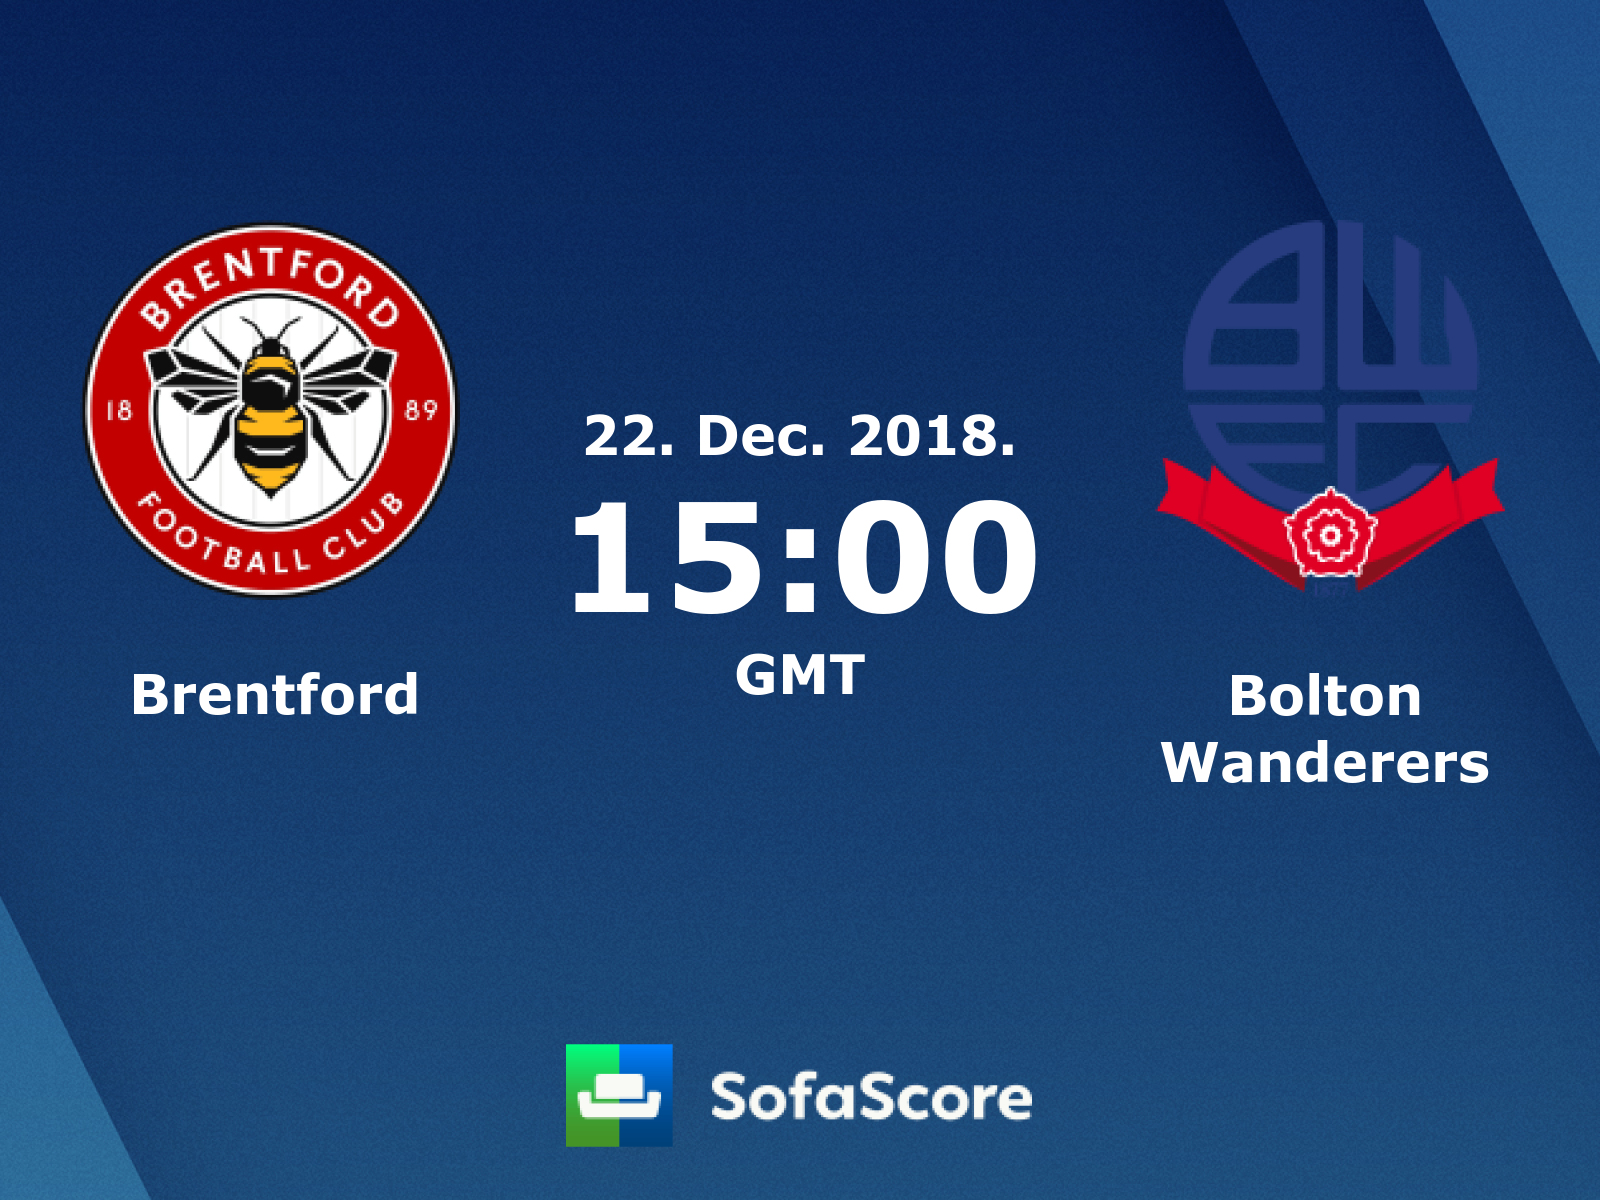 Bolton brentford betting trends tennessee florida betting line